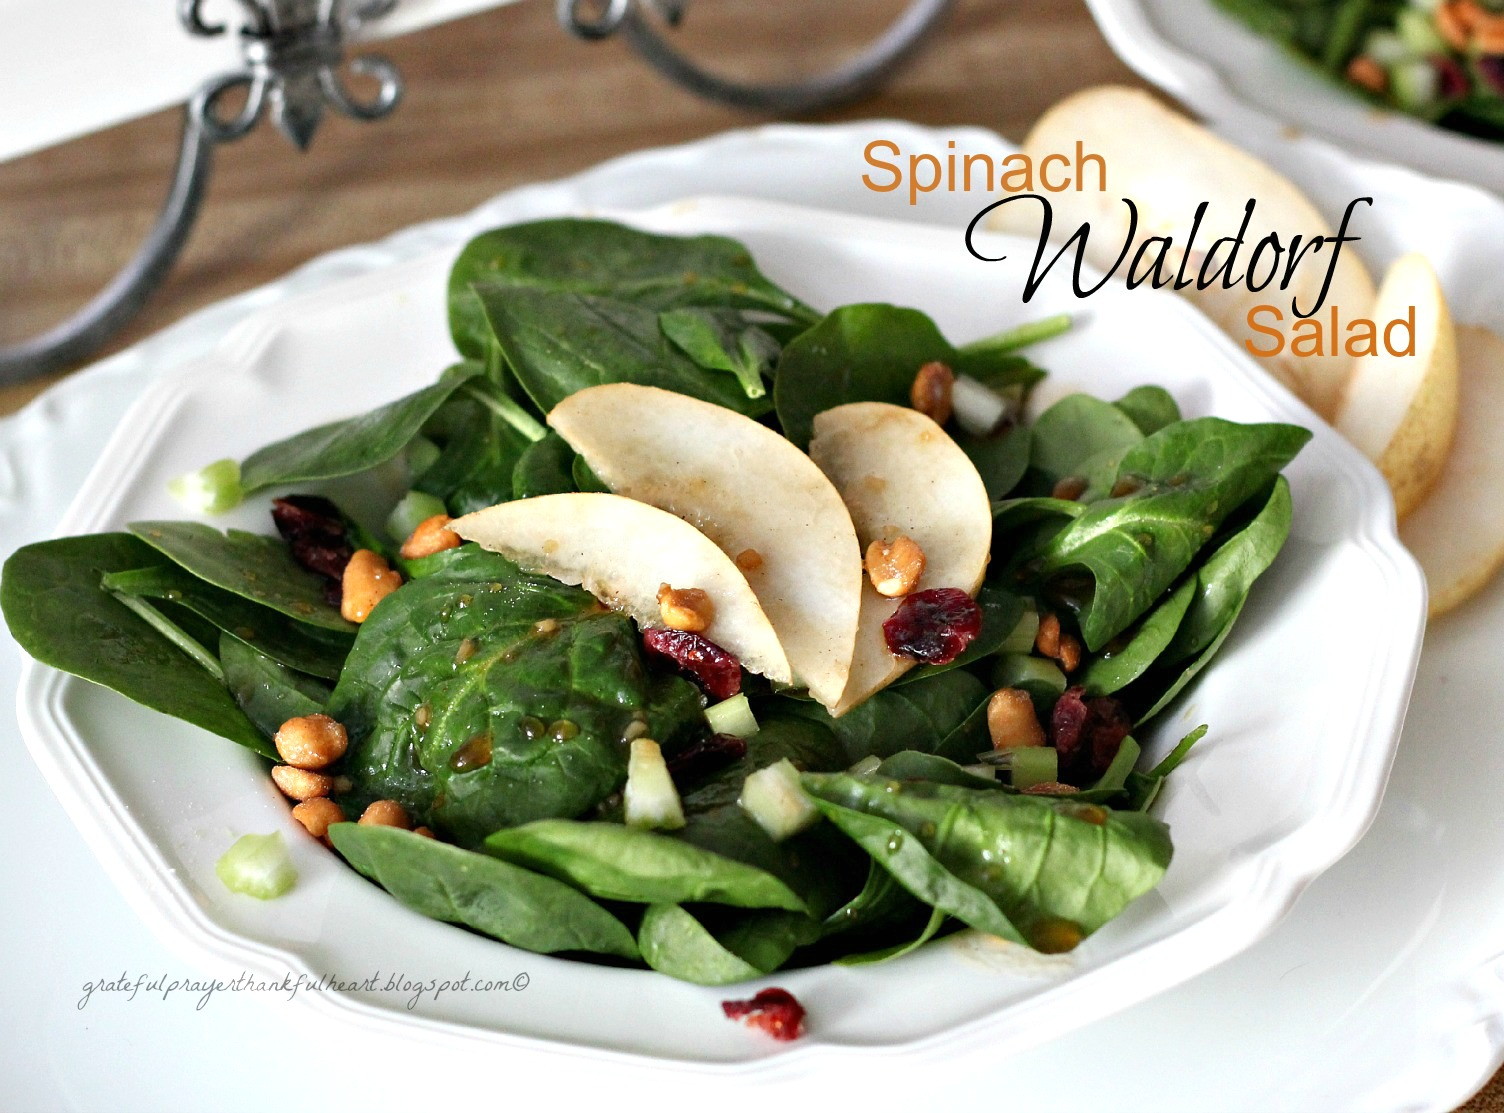 With a Grateful Prayer and a Thankful Heart: Spinach Waldorf Salad